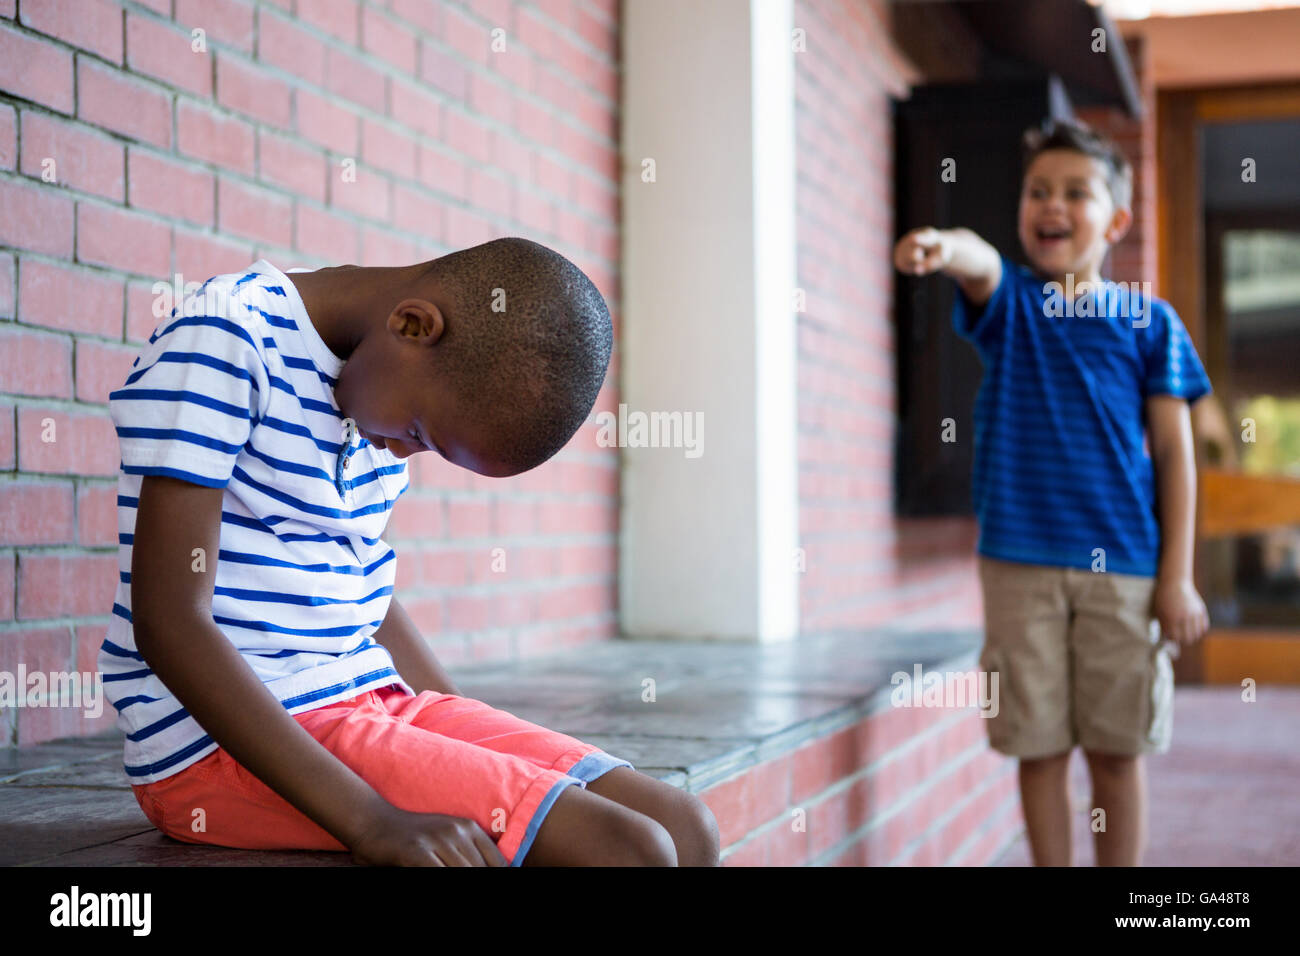 Boy laughing on sad classmate in corridor - Stock Image